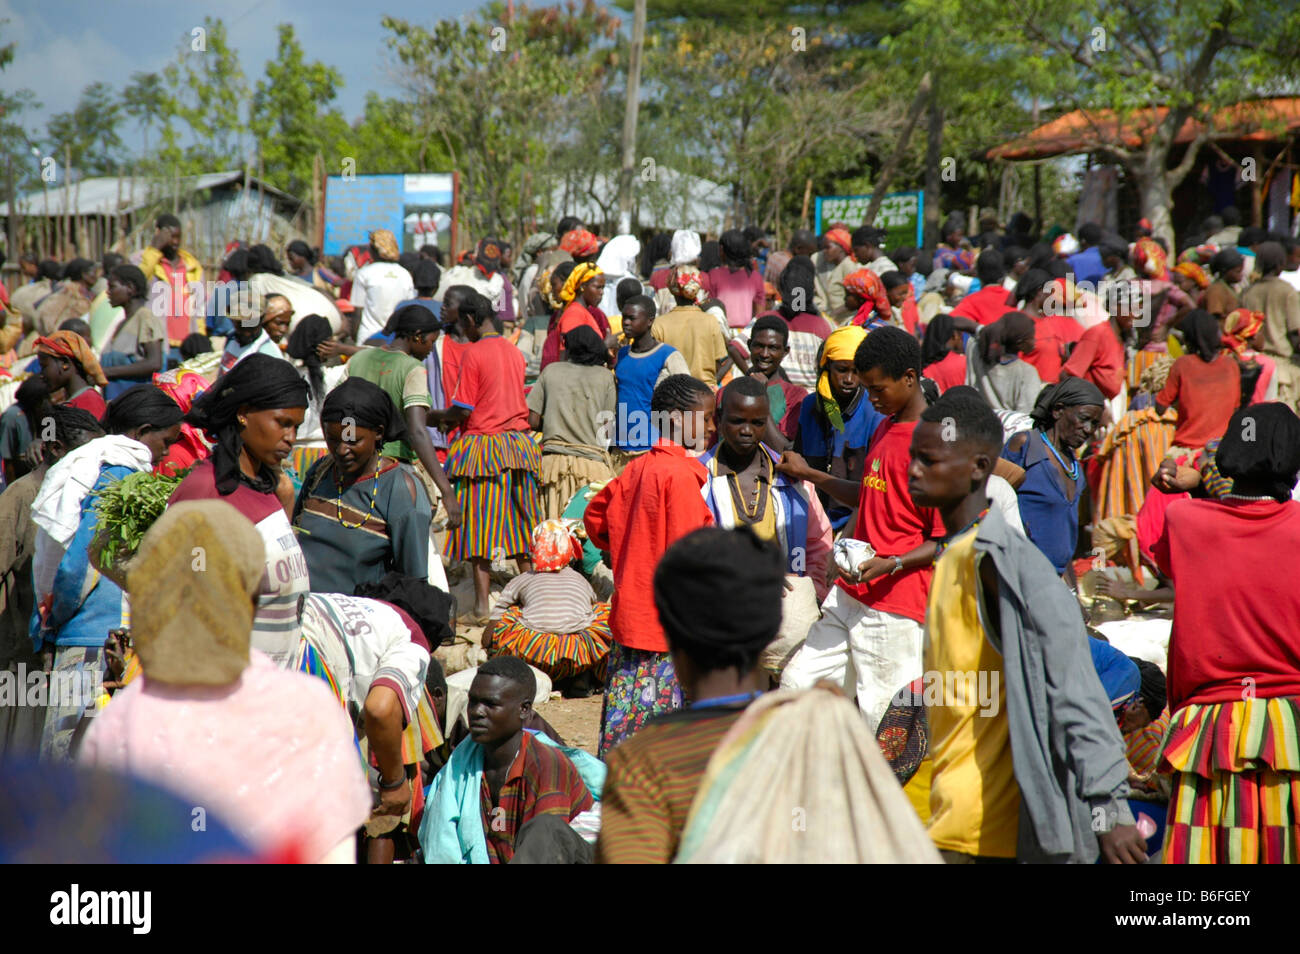 Many people, busy market, market in Konso, Ethiopia, Africa Stock Photo